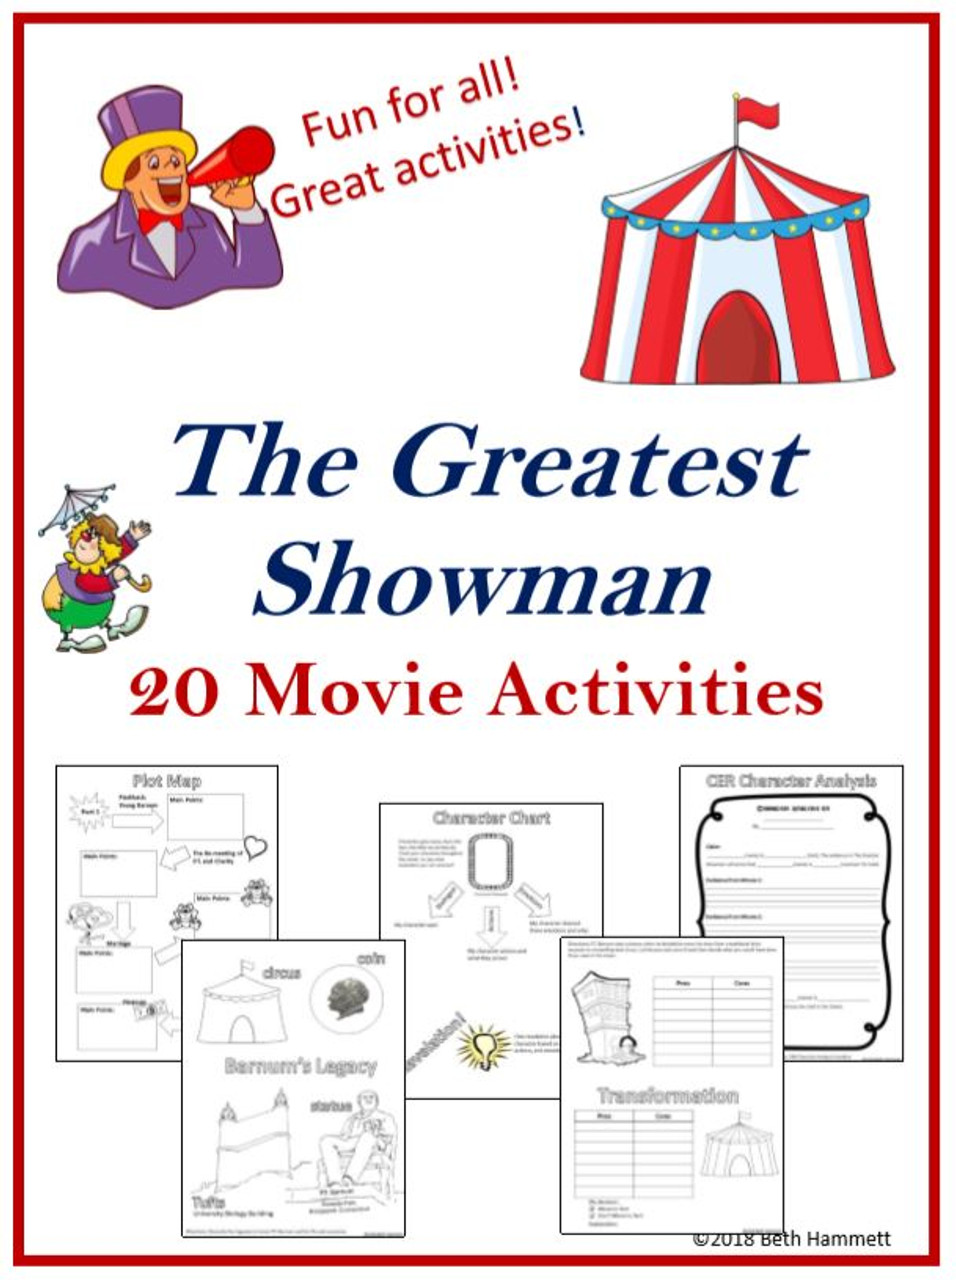 The Greatest Showman: 20 Activities